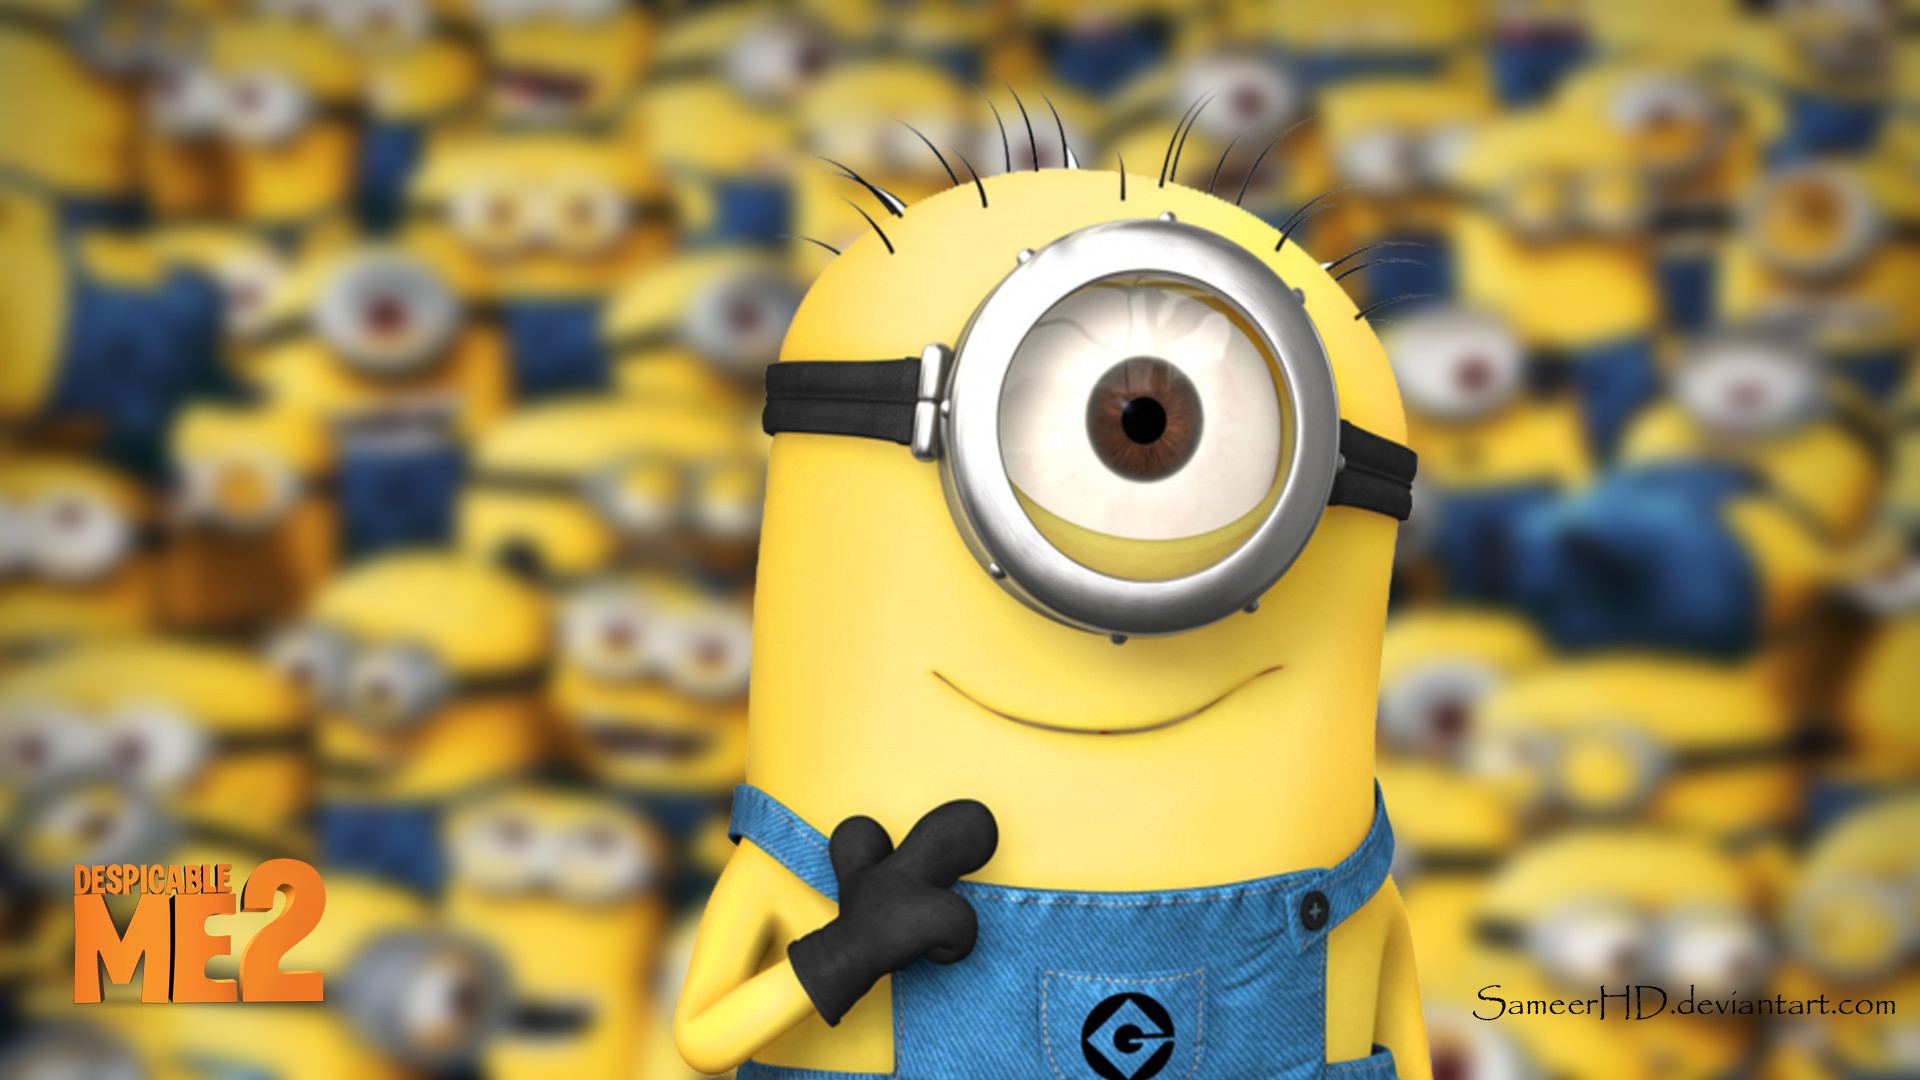 1920x1080 Despicable Me 2 Minion Wallpaper By SameerHD On DeviantArt